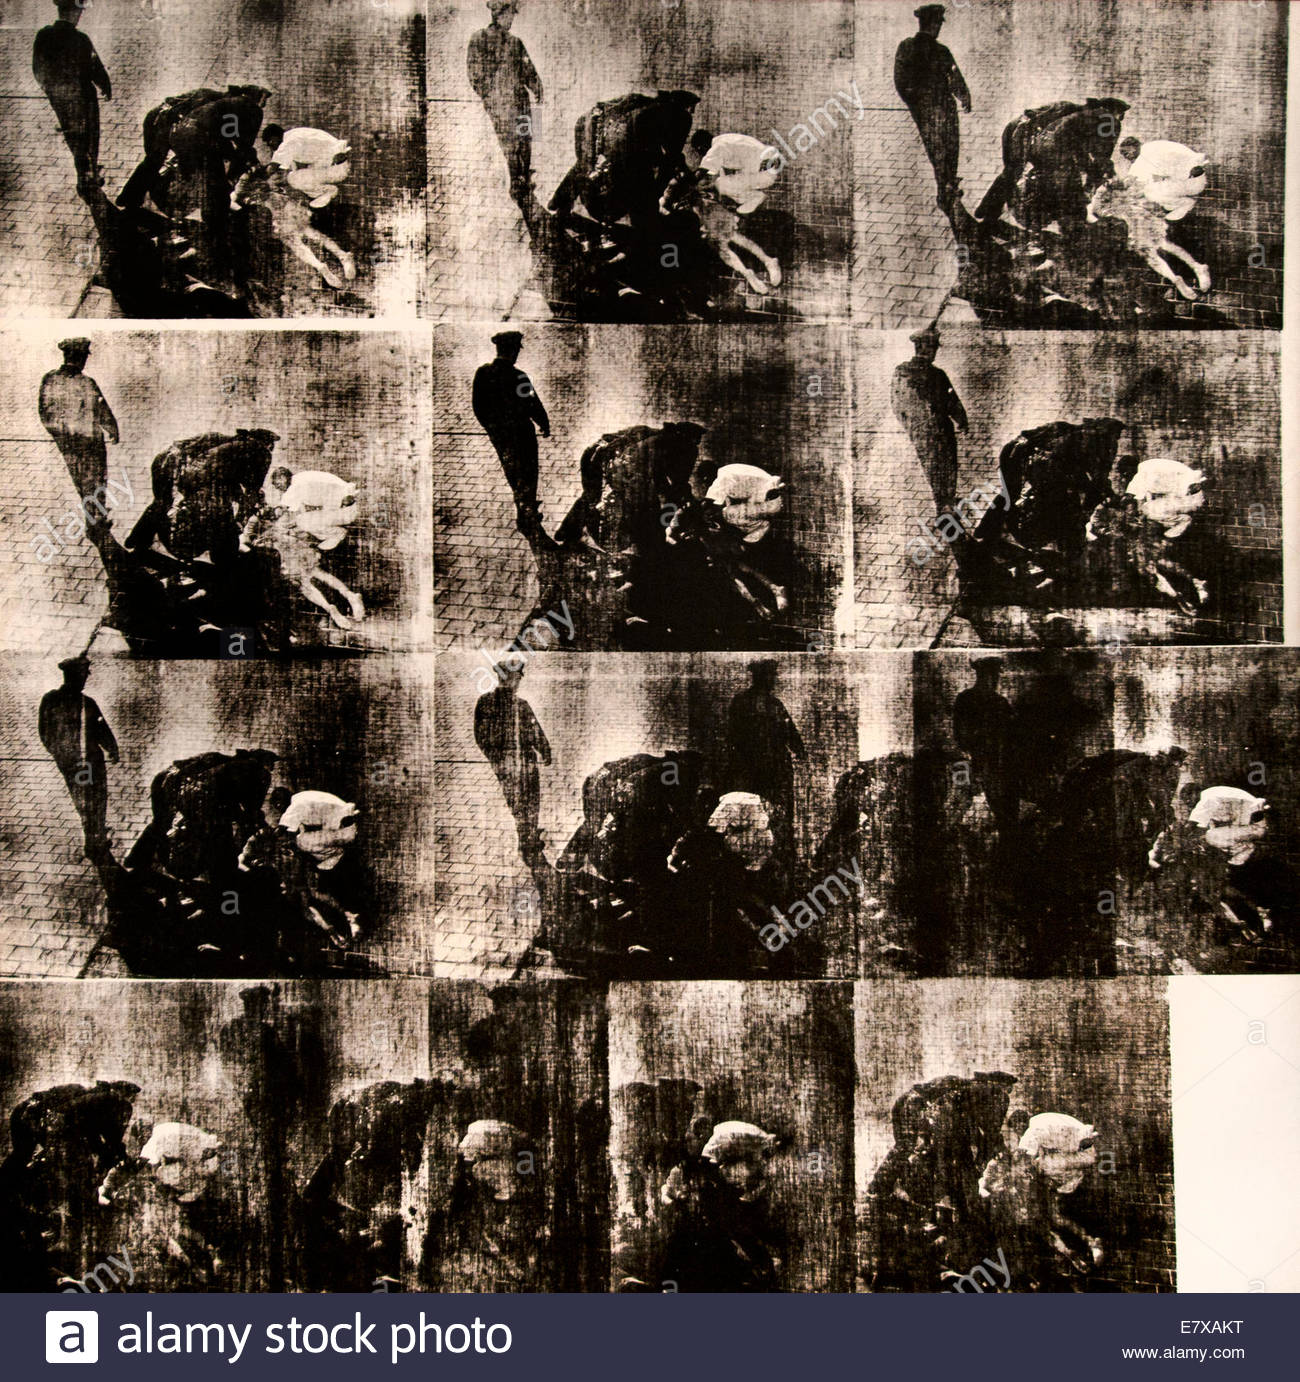 Bellevue II Andy Warhol 1928-1987 American United States of America USA - Stock Image